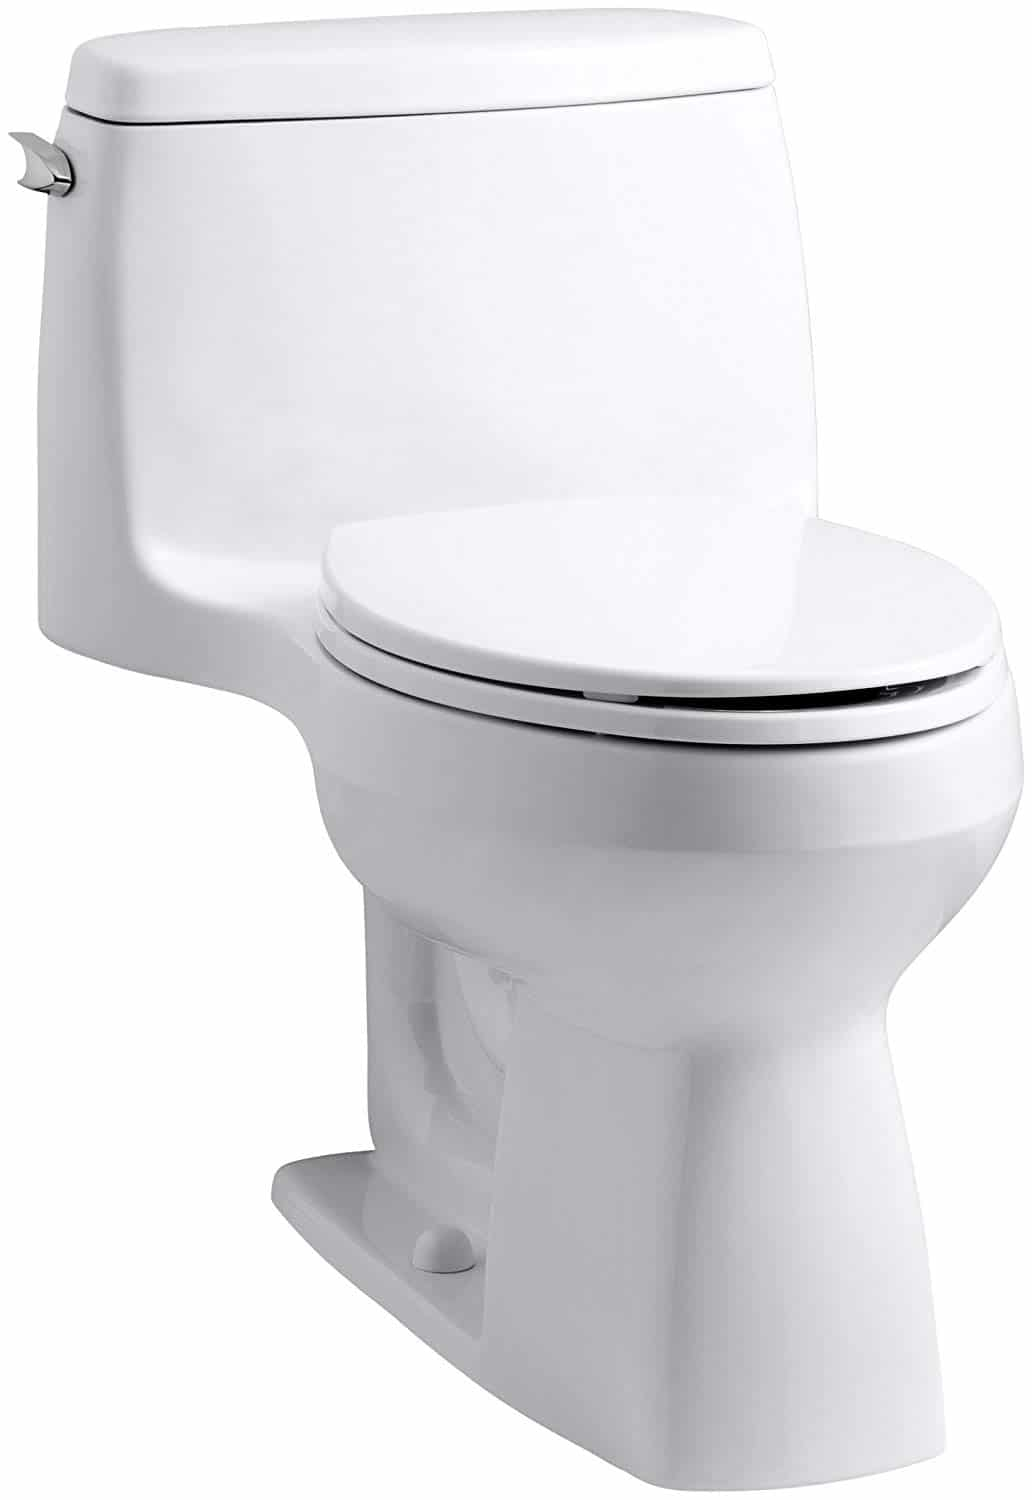 What are the Best Comfort Height Toilets for Seniors?